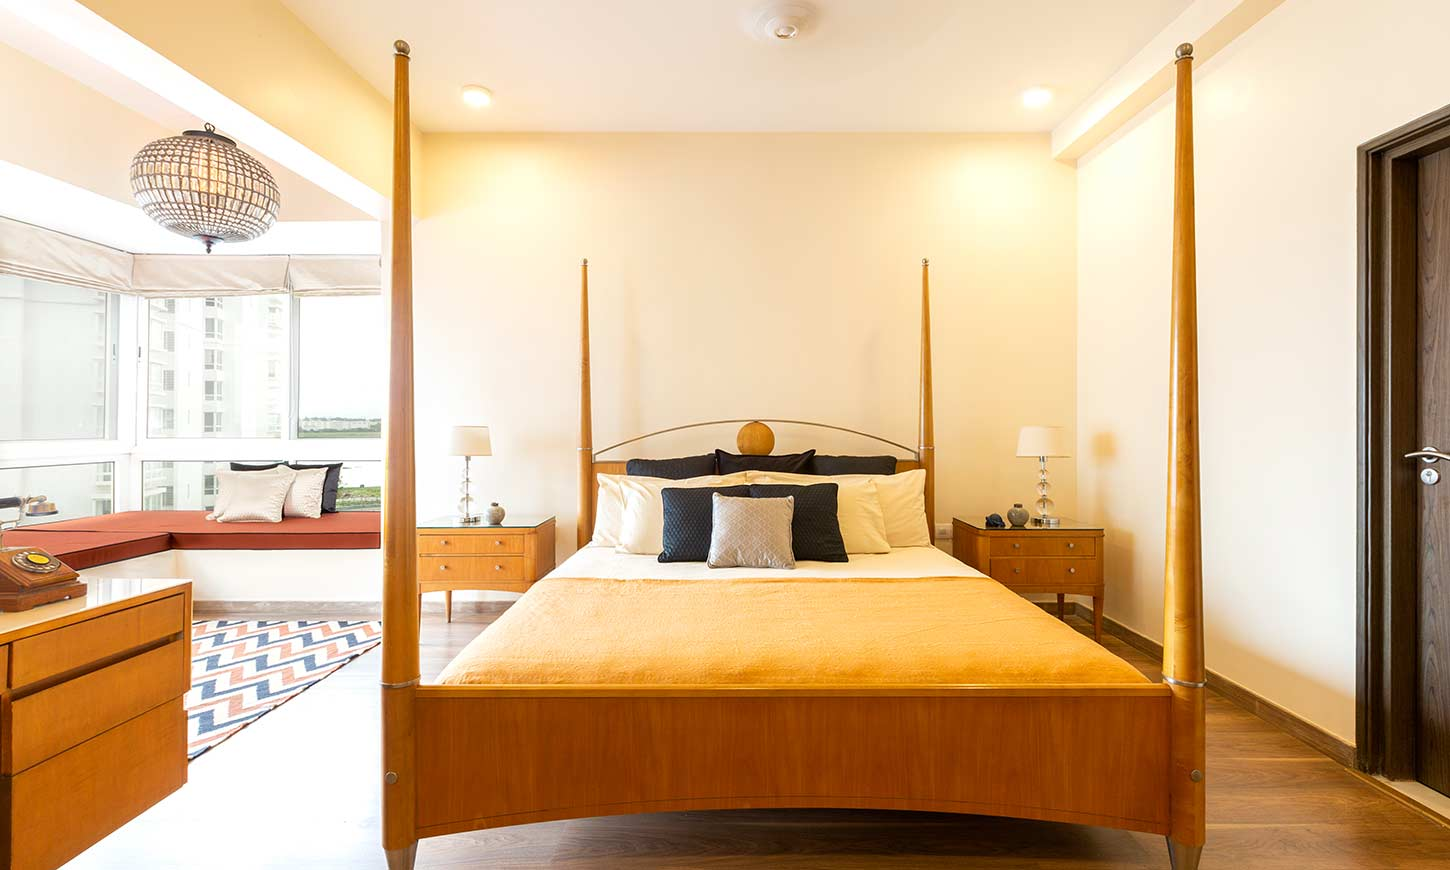 A master bedroom with rustic design for apartment interiors in bangalore